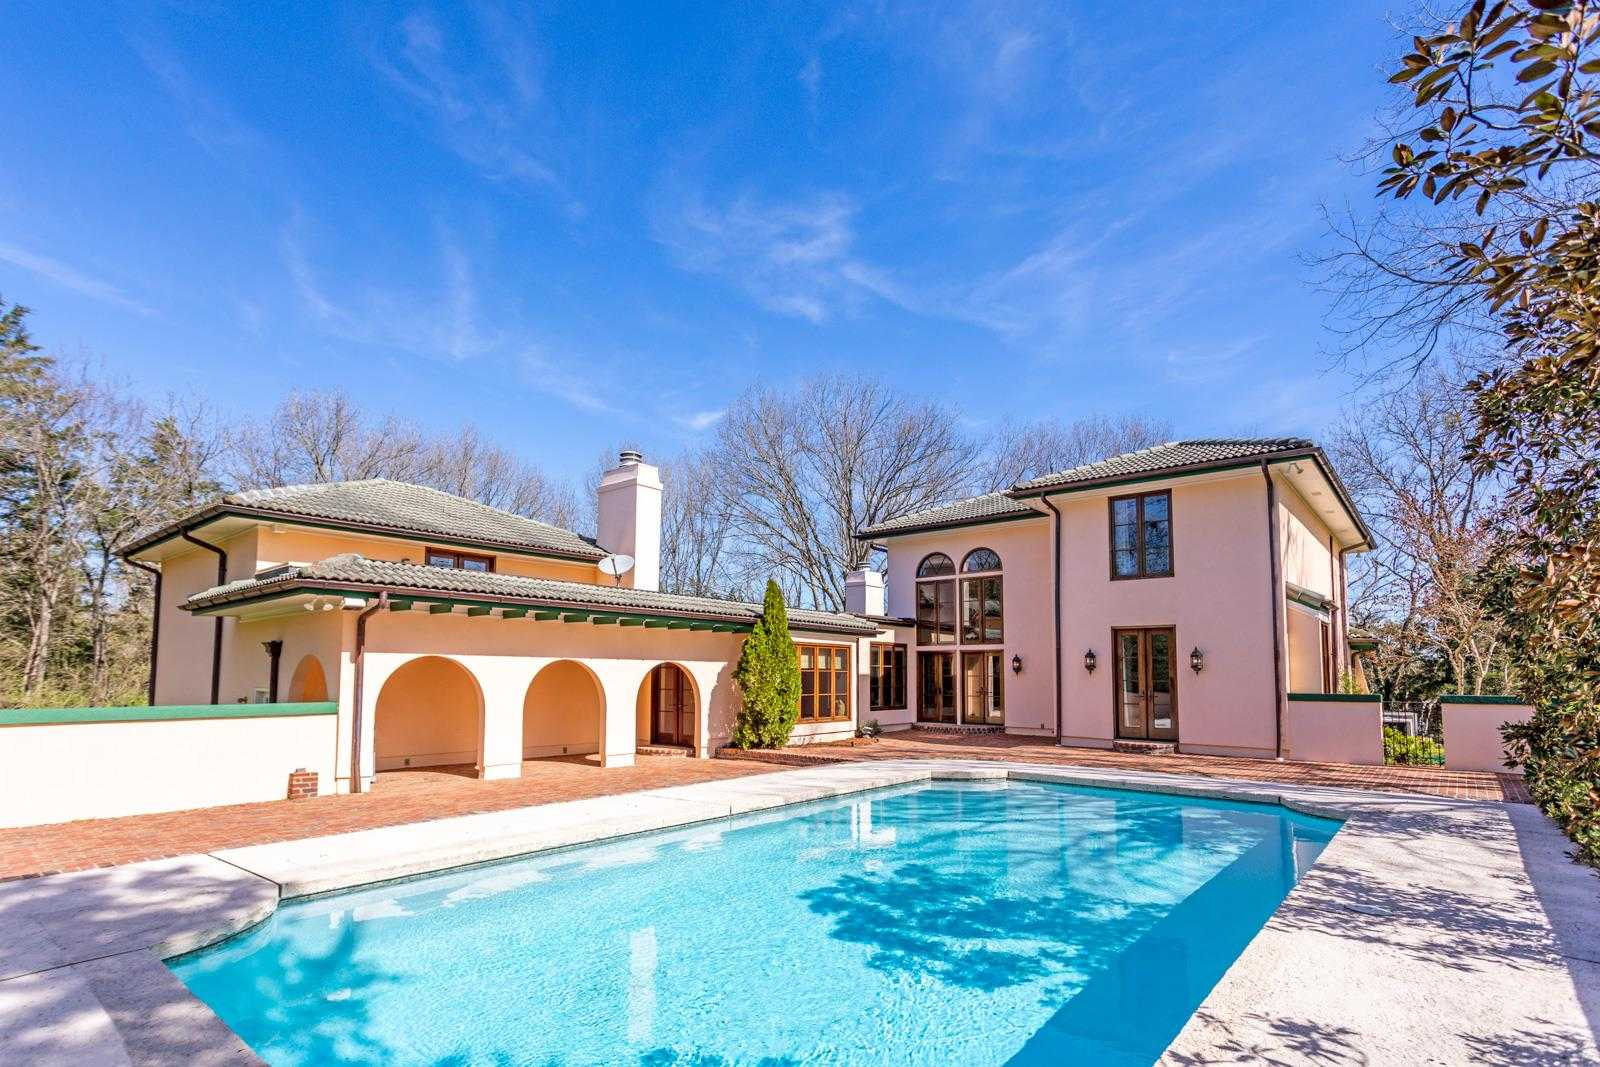 homes pool vaughn road bellevue nashville